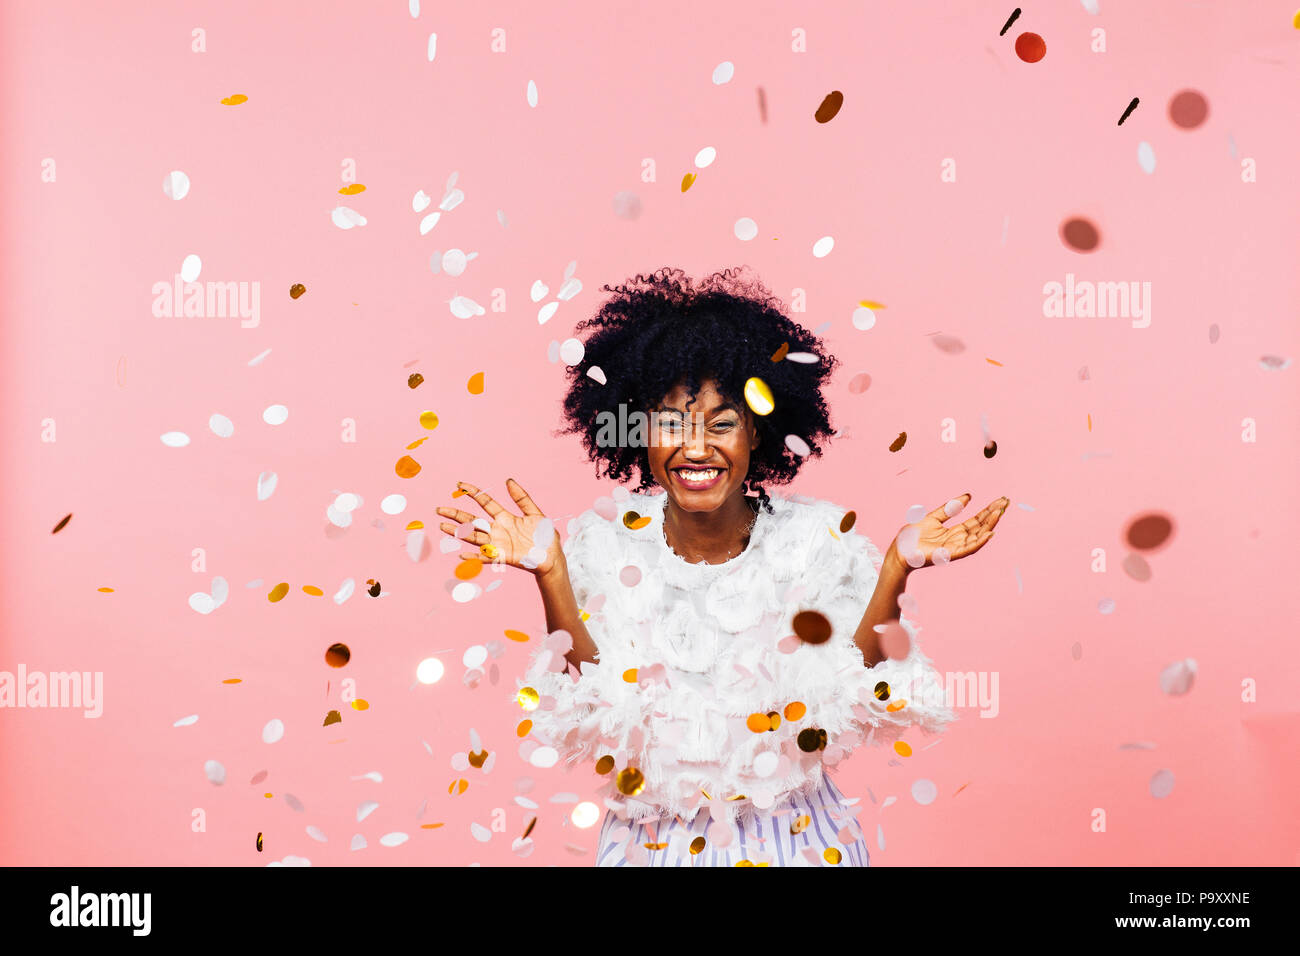 Celebrating happiness, young woman with big smile throwing confetti - Stock Image